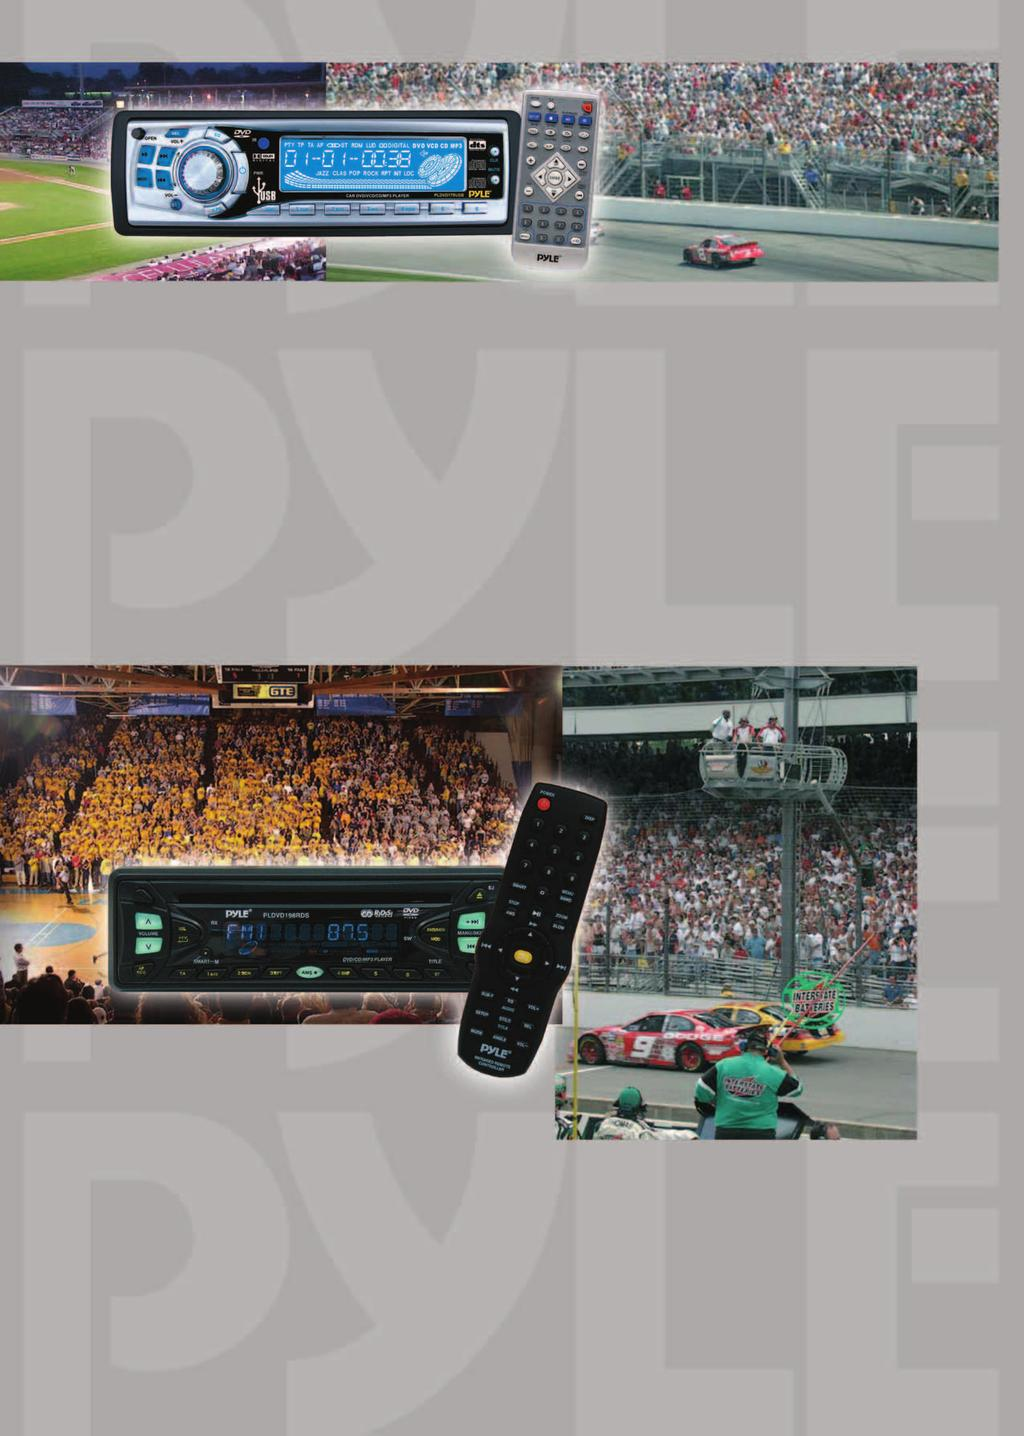 PLDVD178 USB 1 DIN DVD-Player PAL/NTSC mit USB-Port für MP3 Wiedergabe DVD-Video, DVD-R, Video-CD, CD/CDR, MP3 kompatibel On Screen Display mit Titel, Spielzeit, Kapitel, Untertitel und Angle Max.